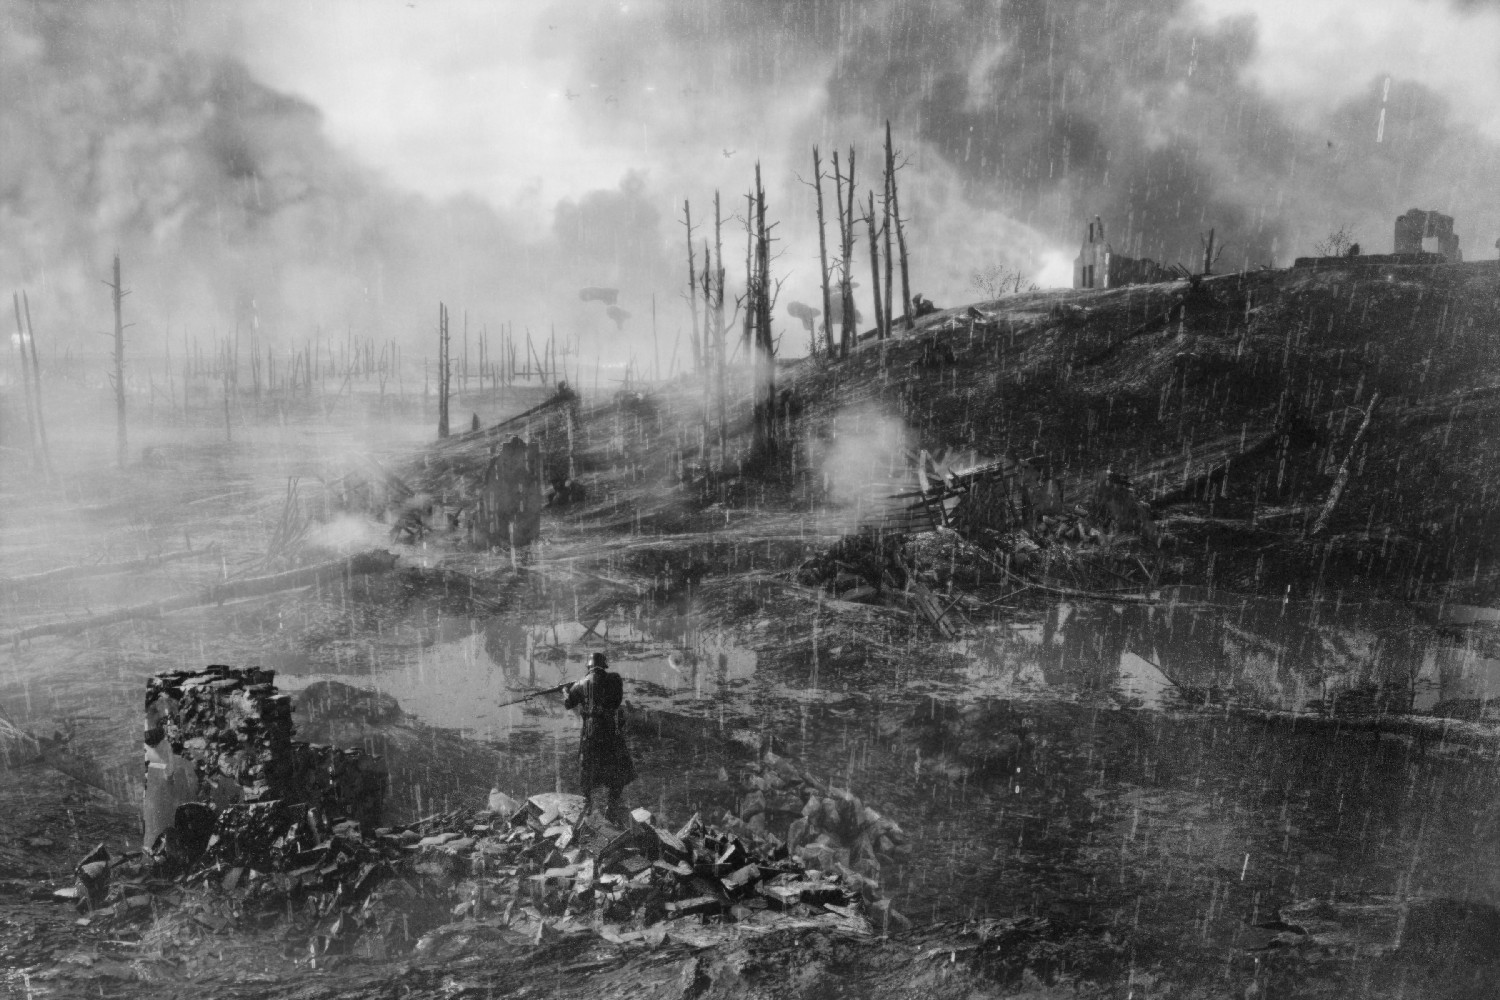 Battlefield 1 Screens Look Hauntingly Realistic With Black & White Filter DSPY38c